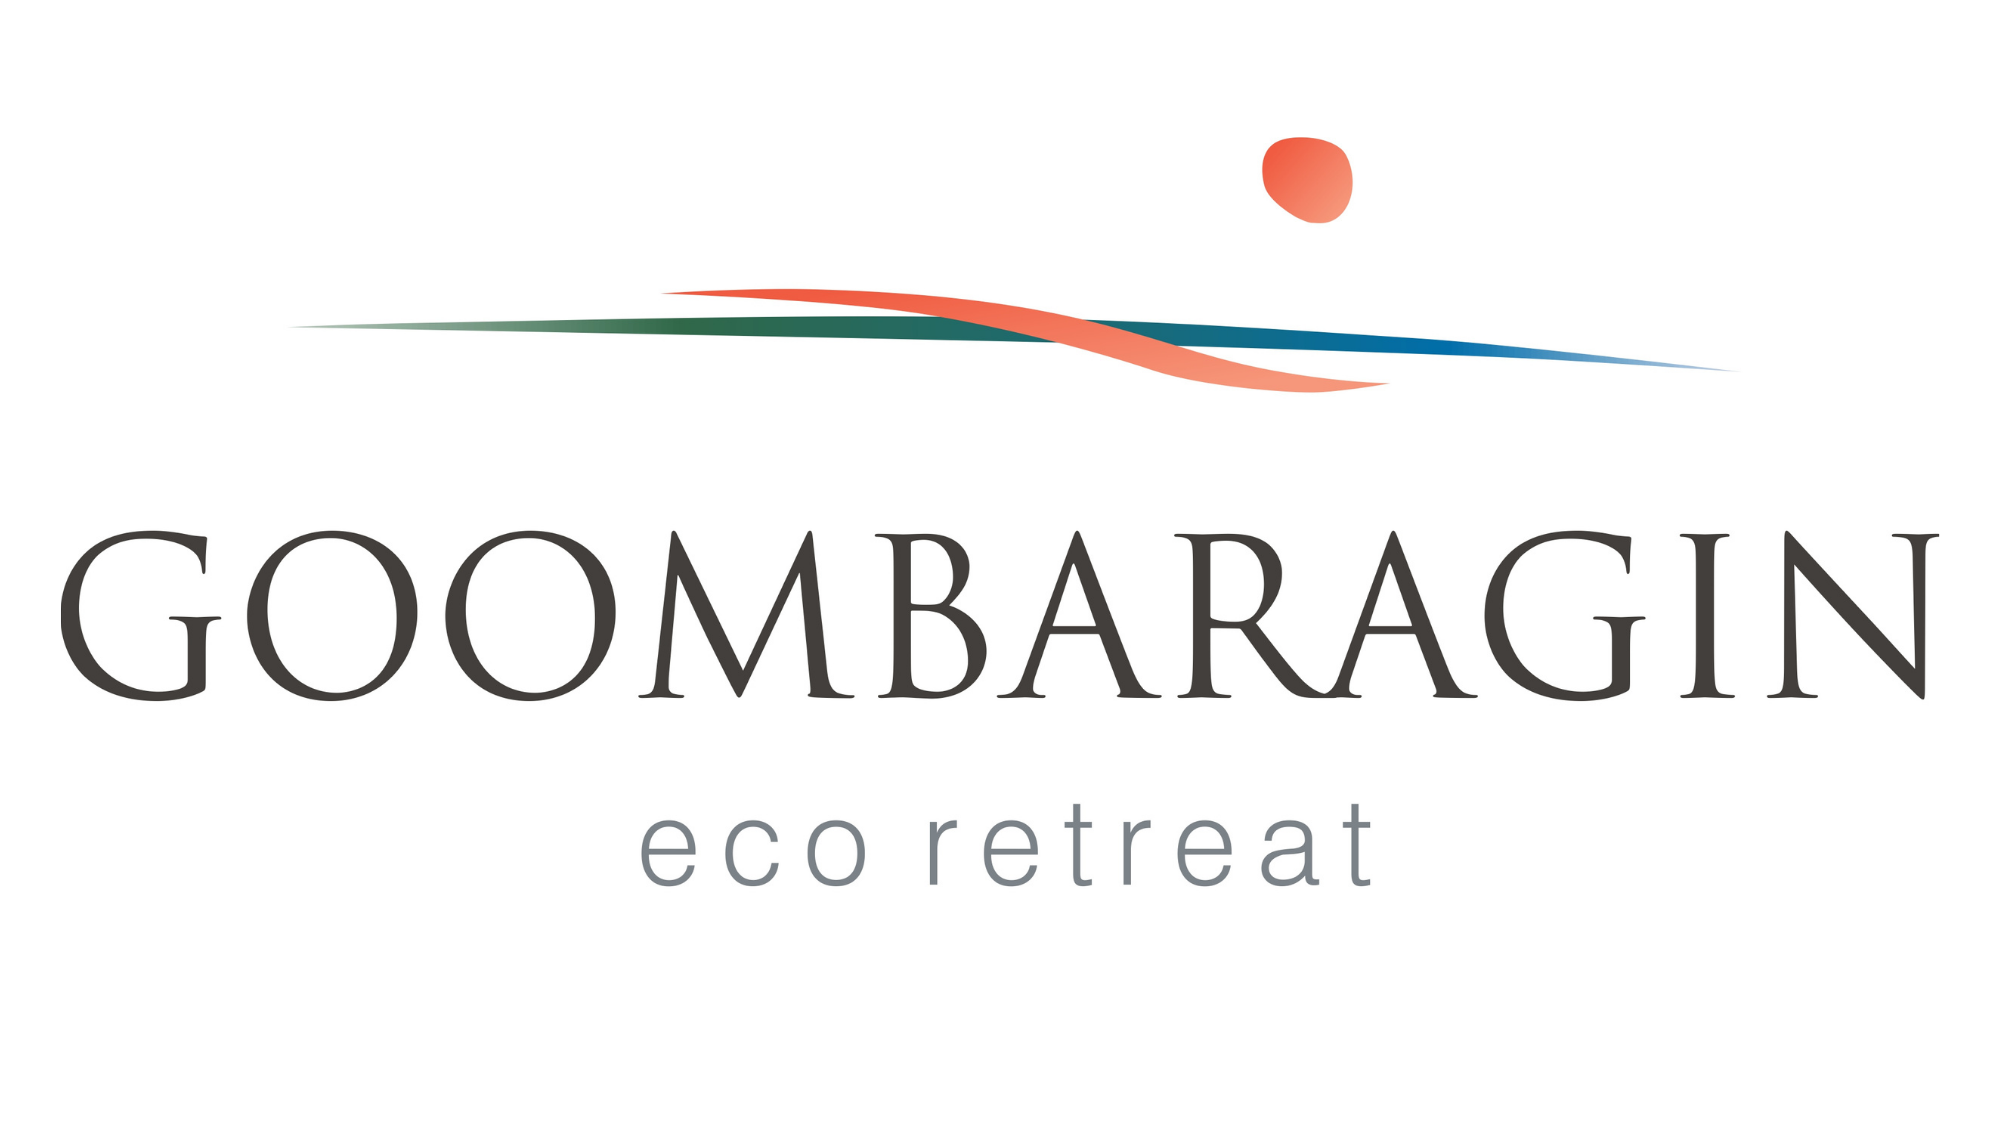 Goombaragin Eco Retreat